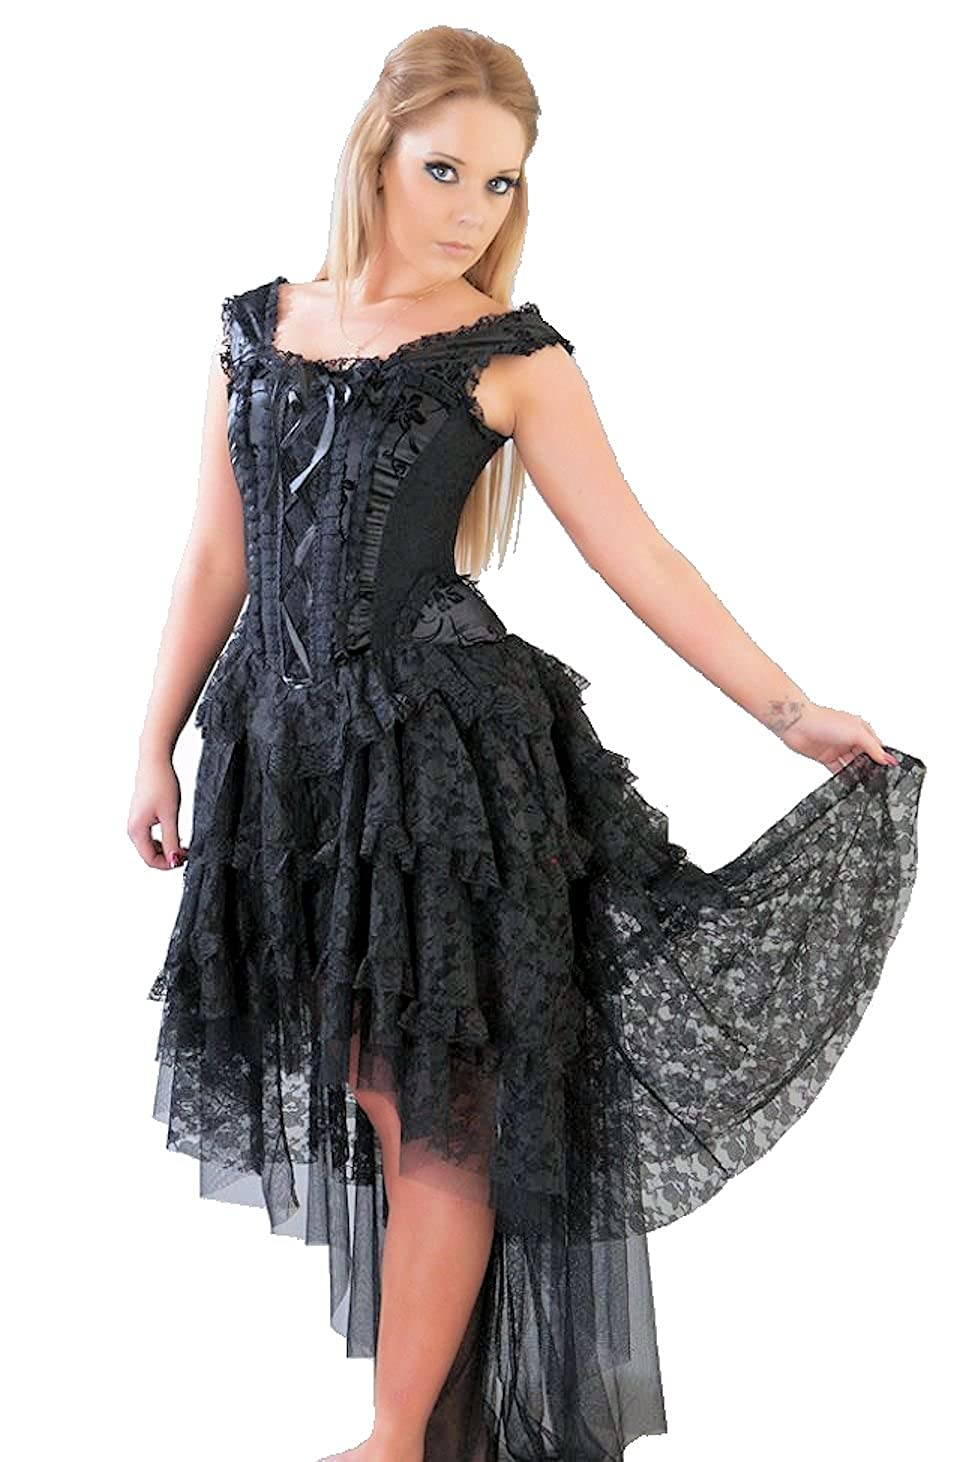 Steampunk Skirts | Bustle Skirts, Lace Skirts, Ruffle Skirts Black Ophelie Skirt $86.99 AT vintagedancer.com